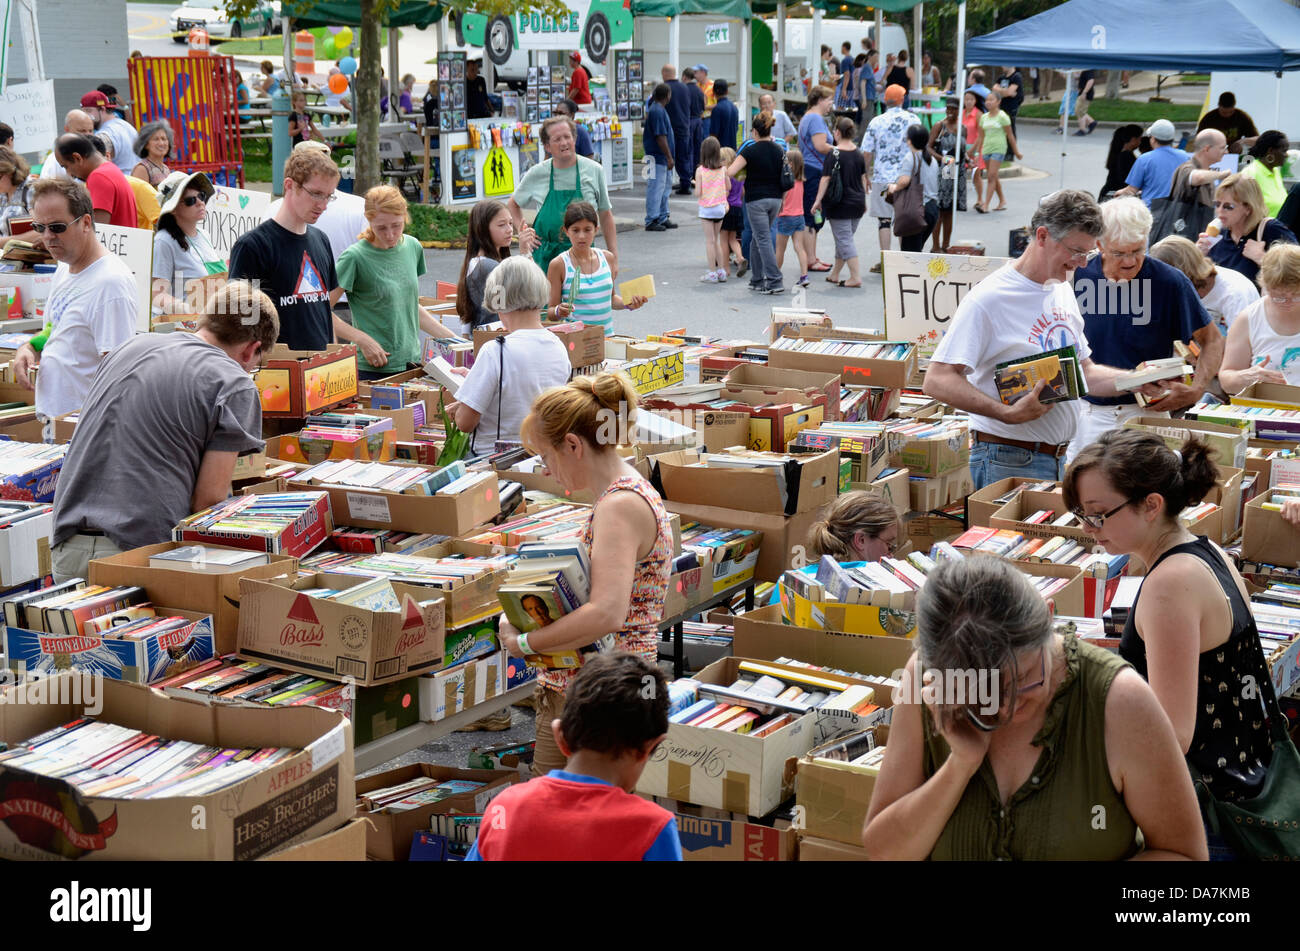 best loved 993bb 85db3 Dozens of shoppers shop at a large outdoor book sale in ...